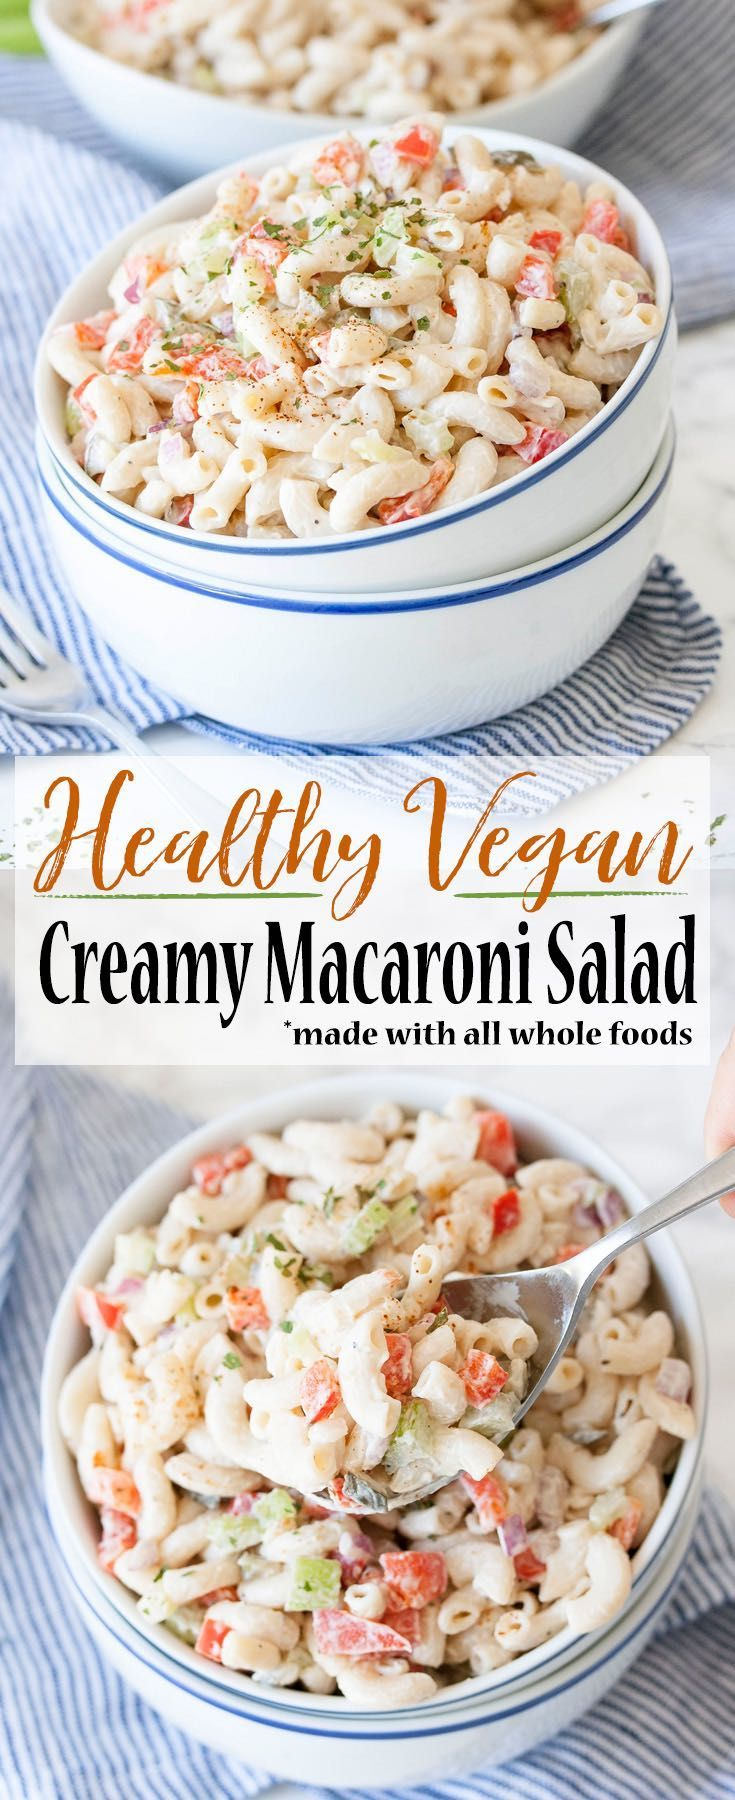 Creamy Comfort Food Gone Healthy In This Vegan Macaroni